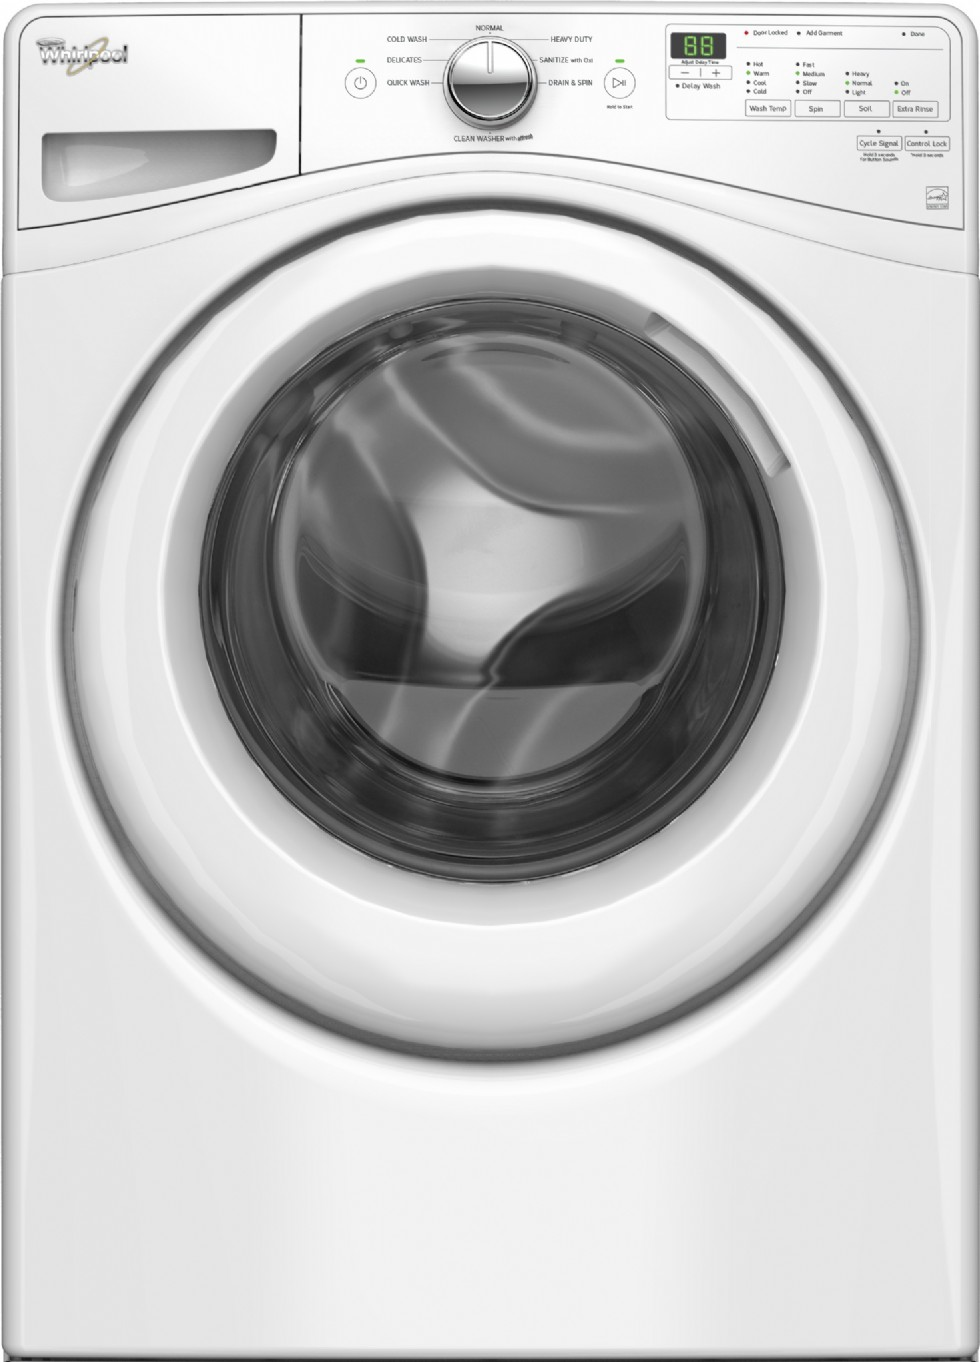 How do you reset a Whirlpool front load washer?